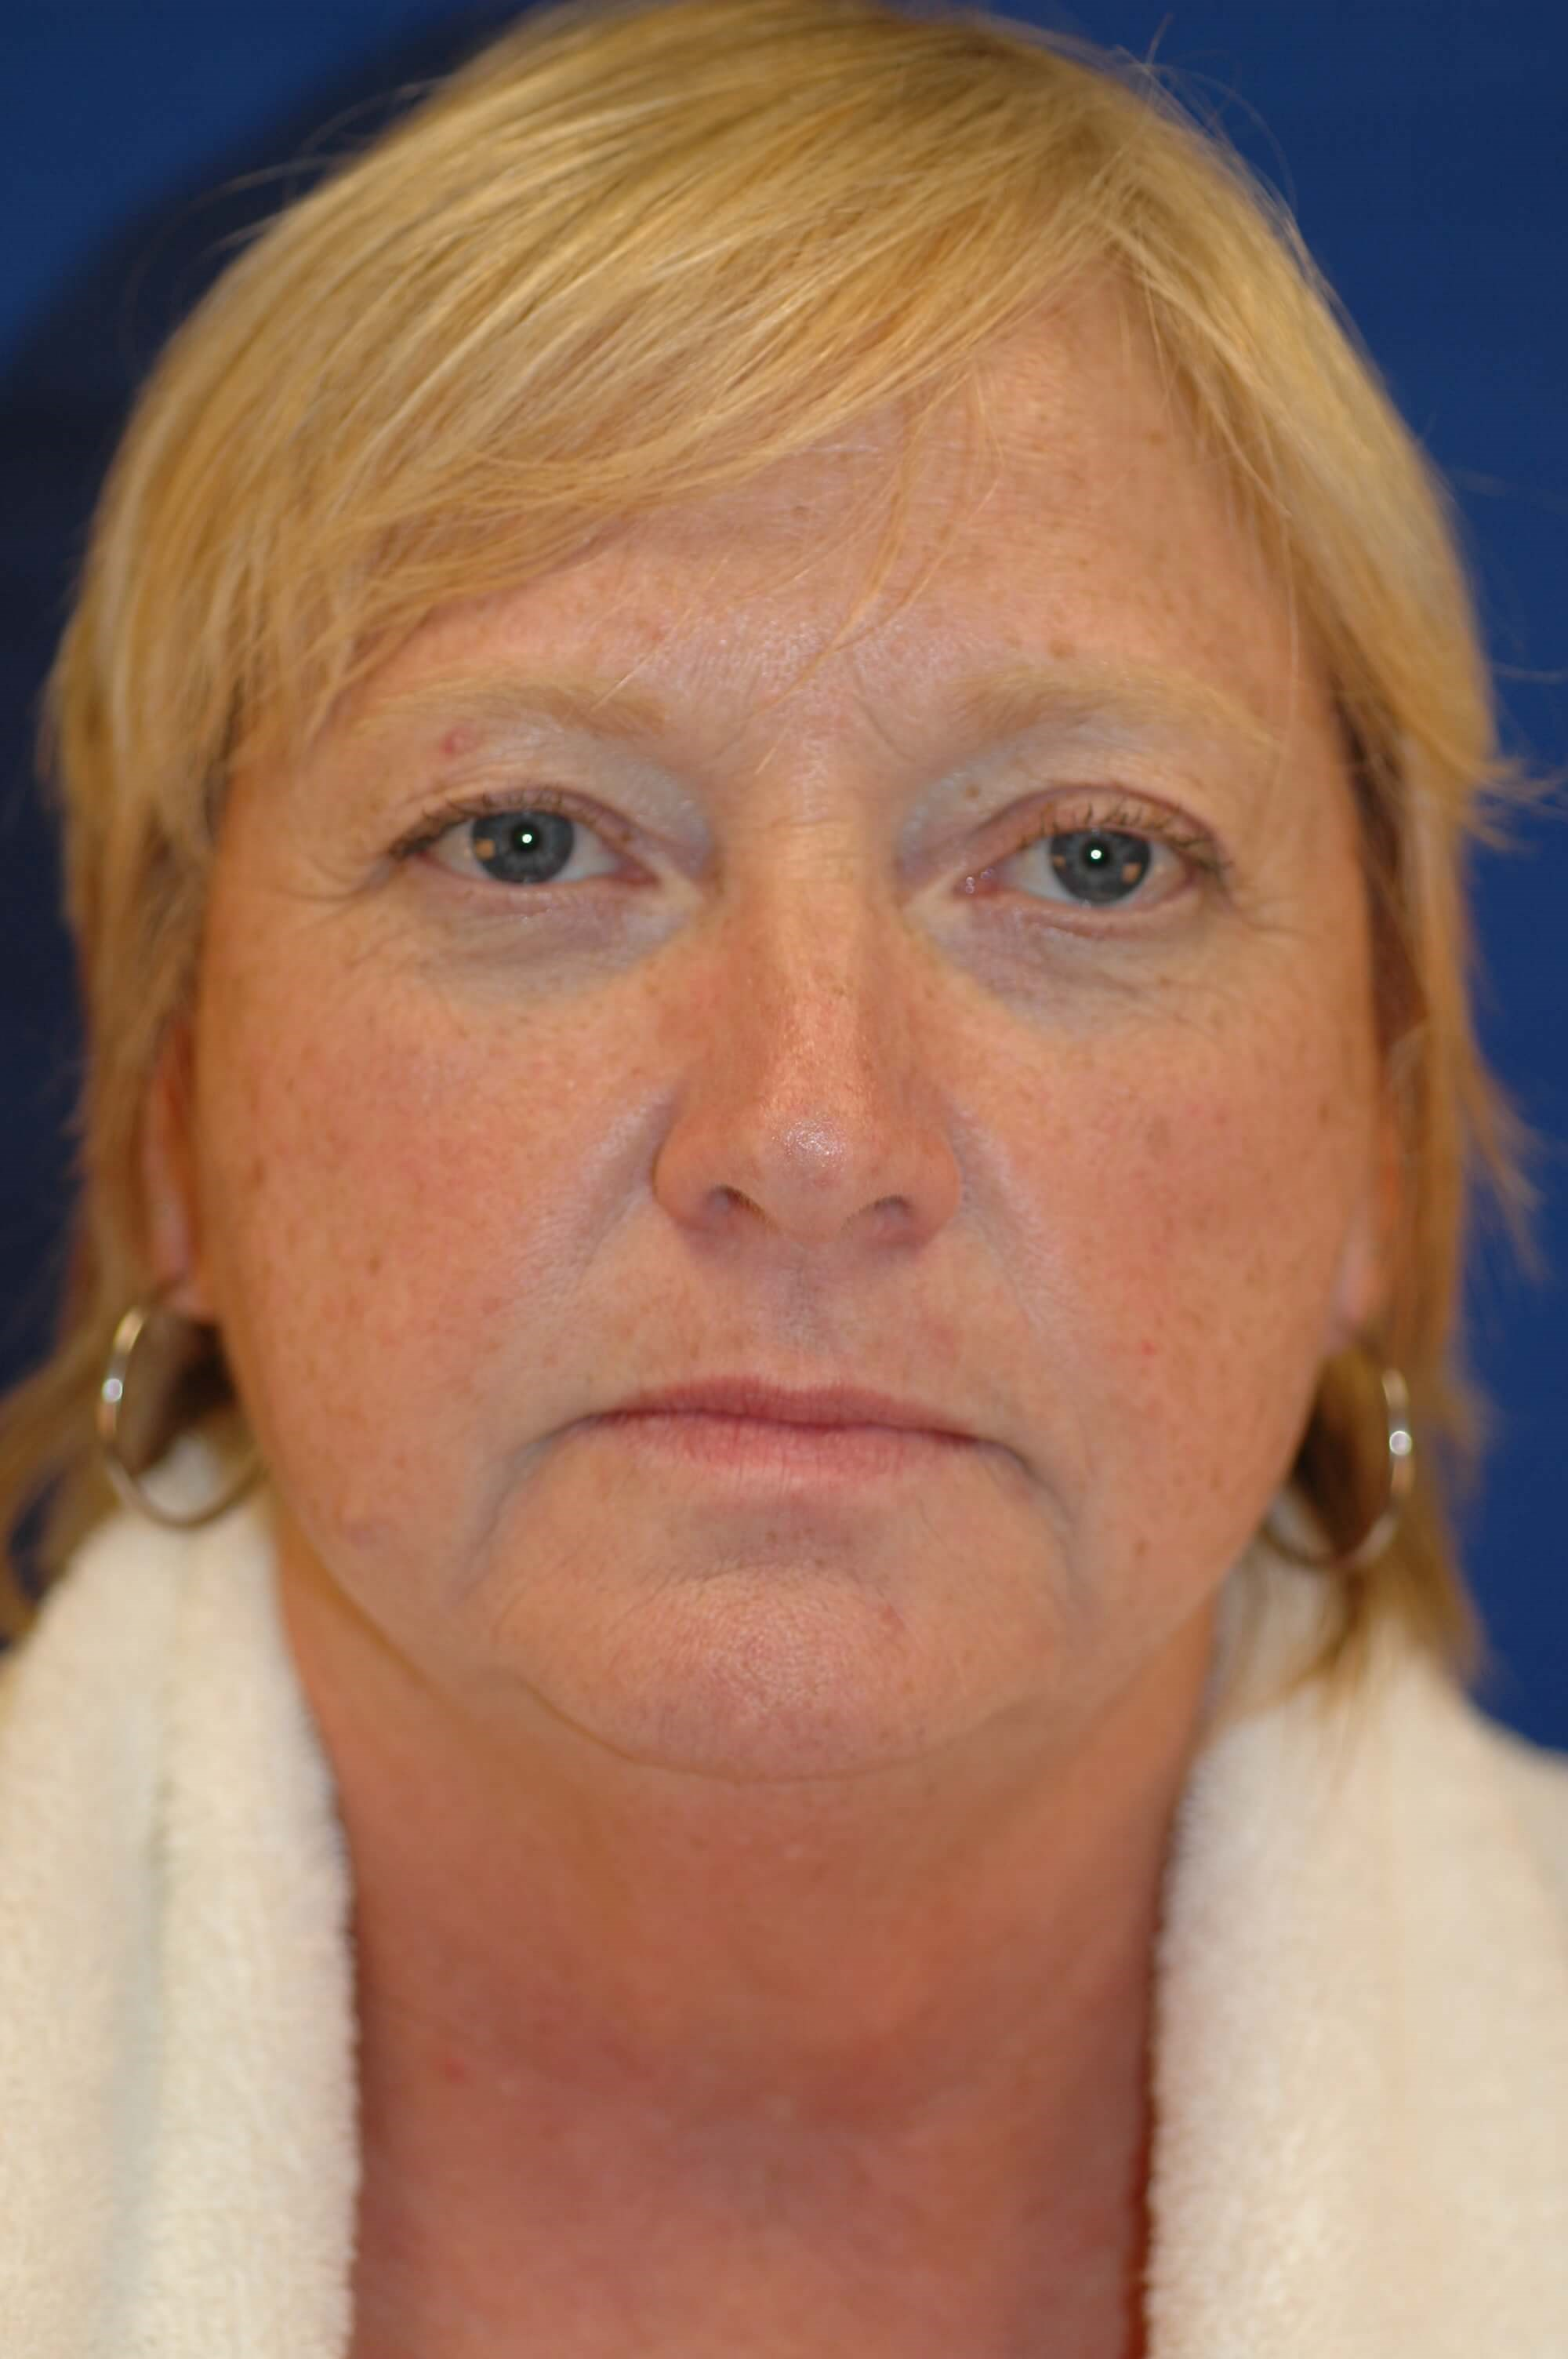 Newport Facial Rejuvenation Before